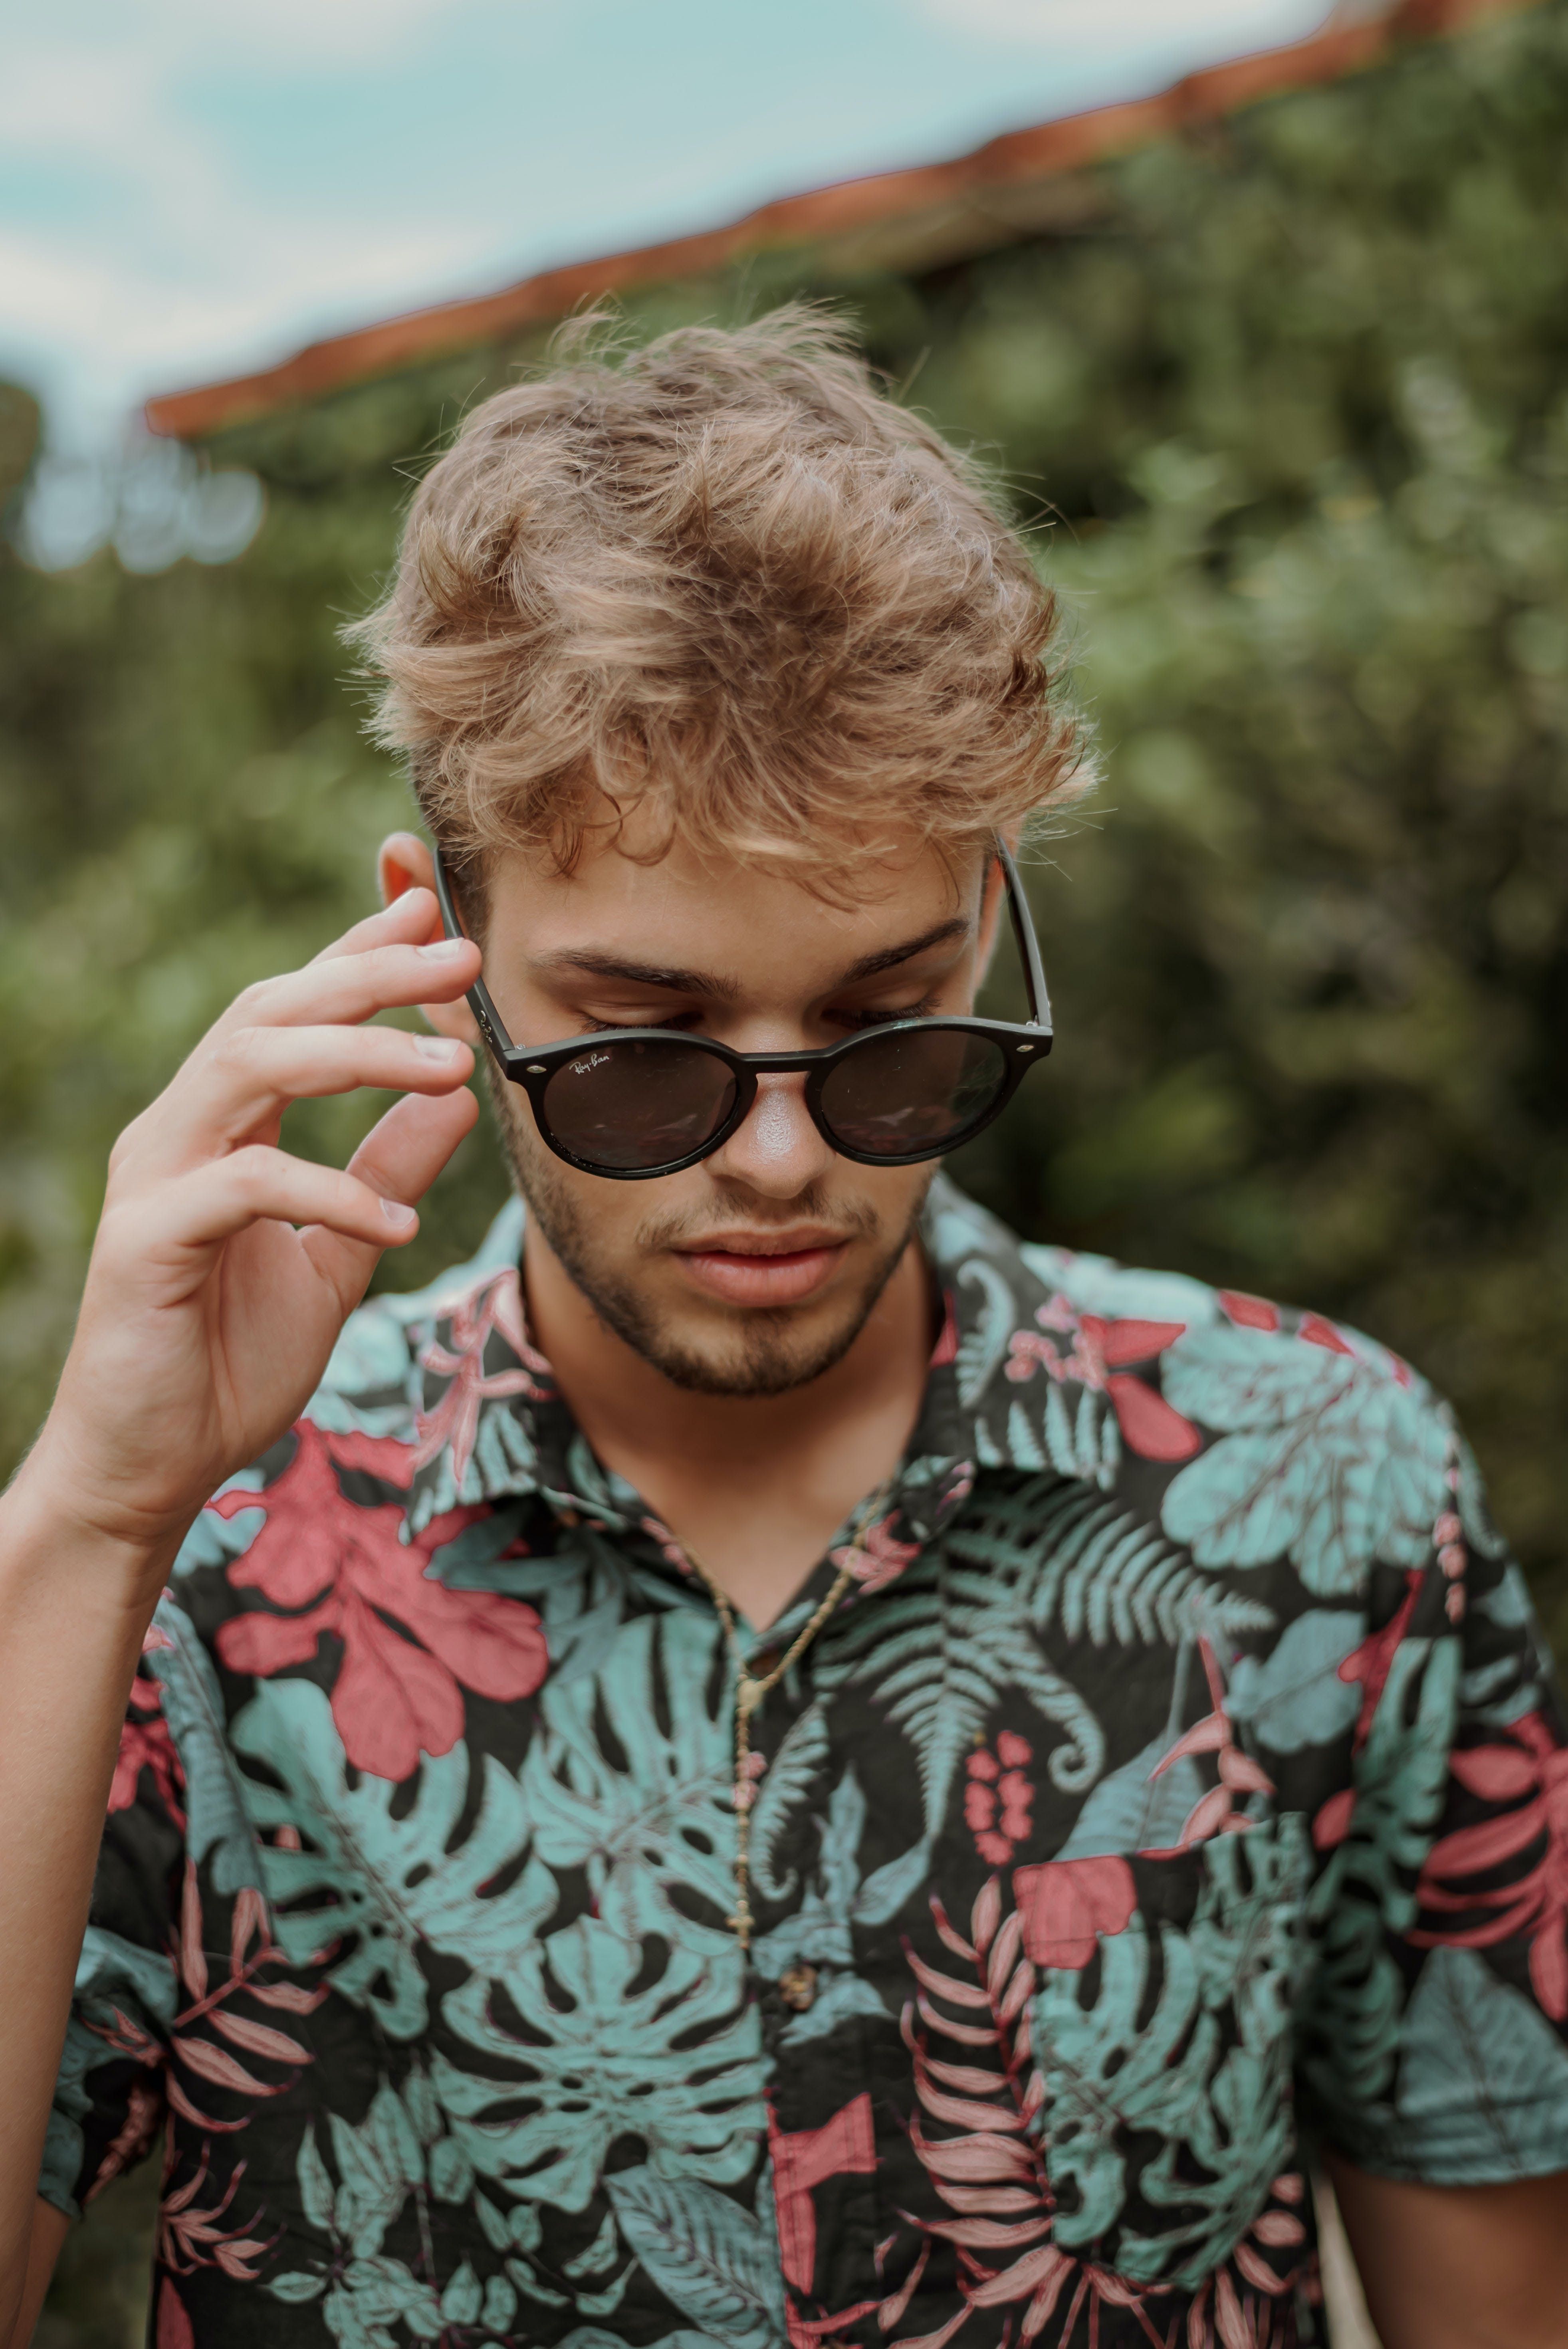 Man Wearing Floral Polo Shirt Holding Sunglasses